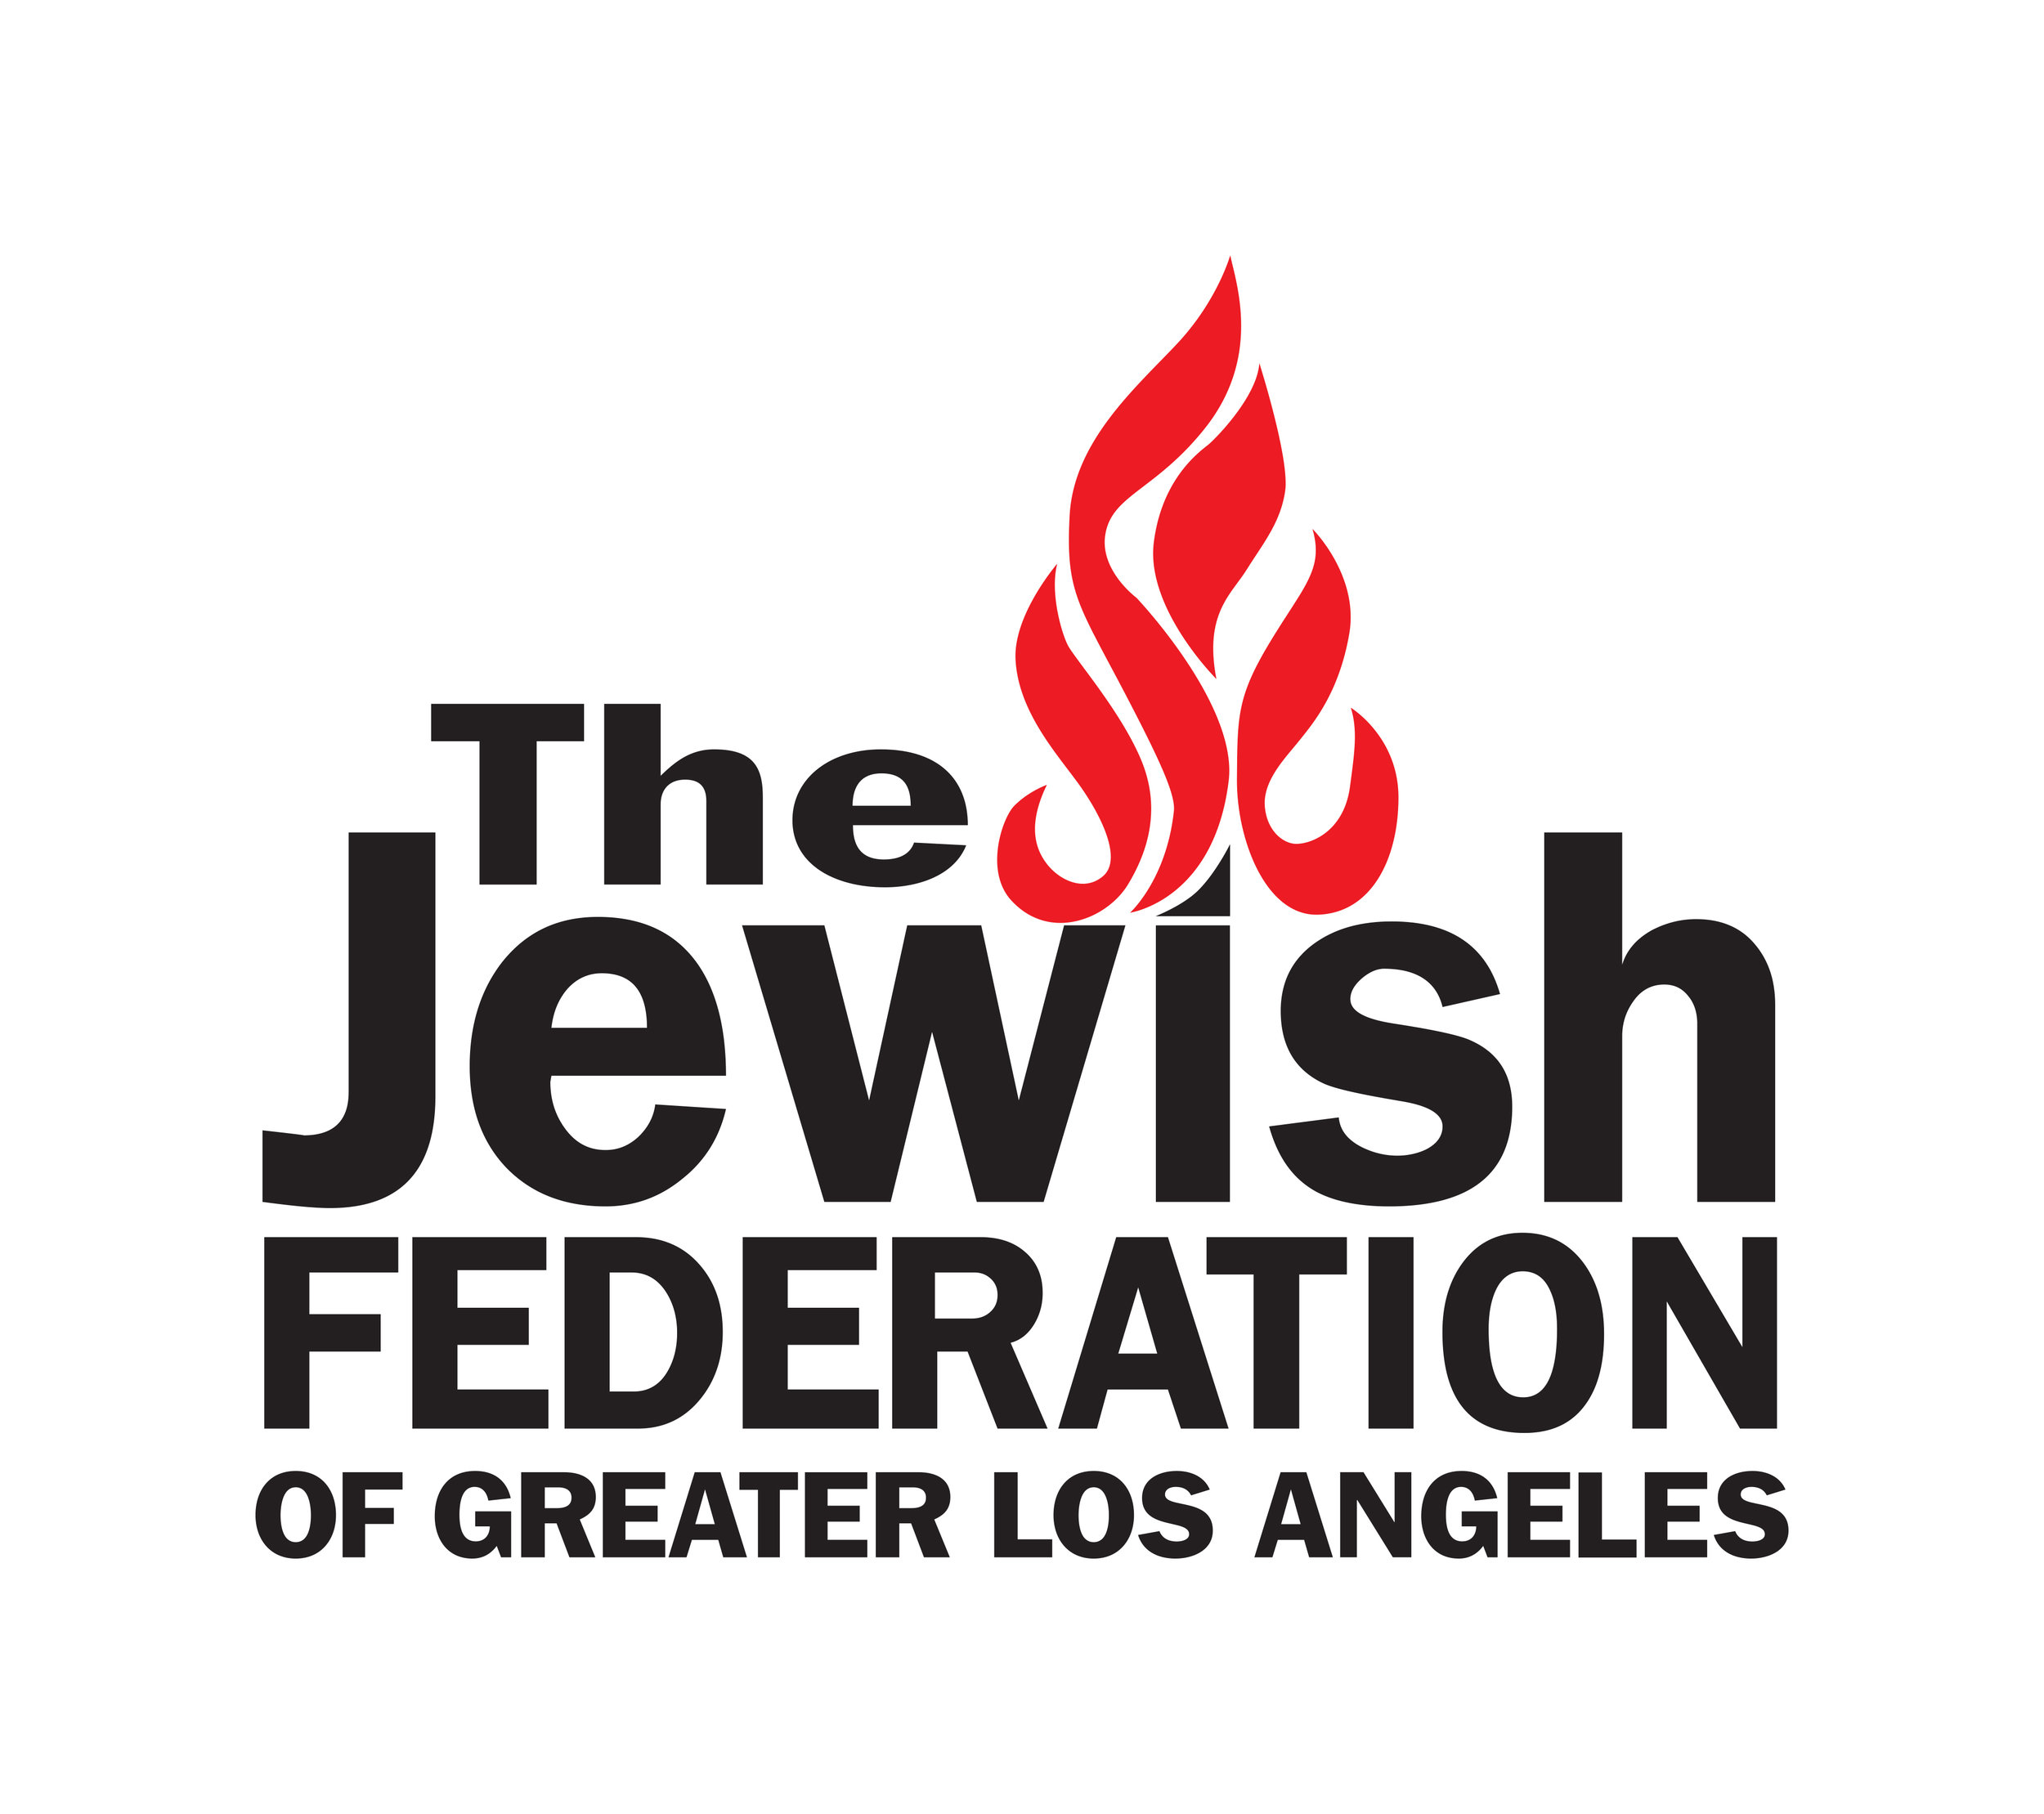 jewish_federation_of_greater_los_angeles_12.jpg